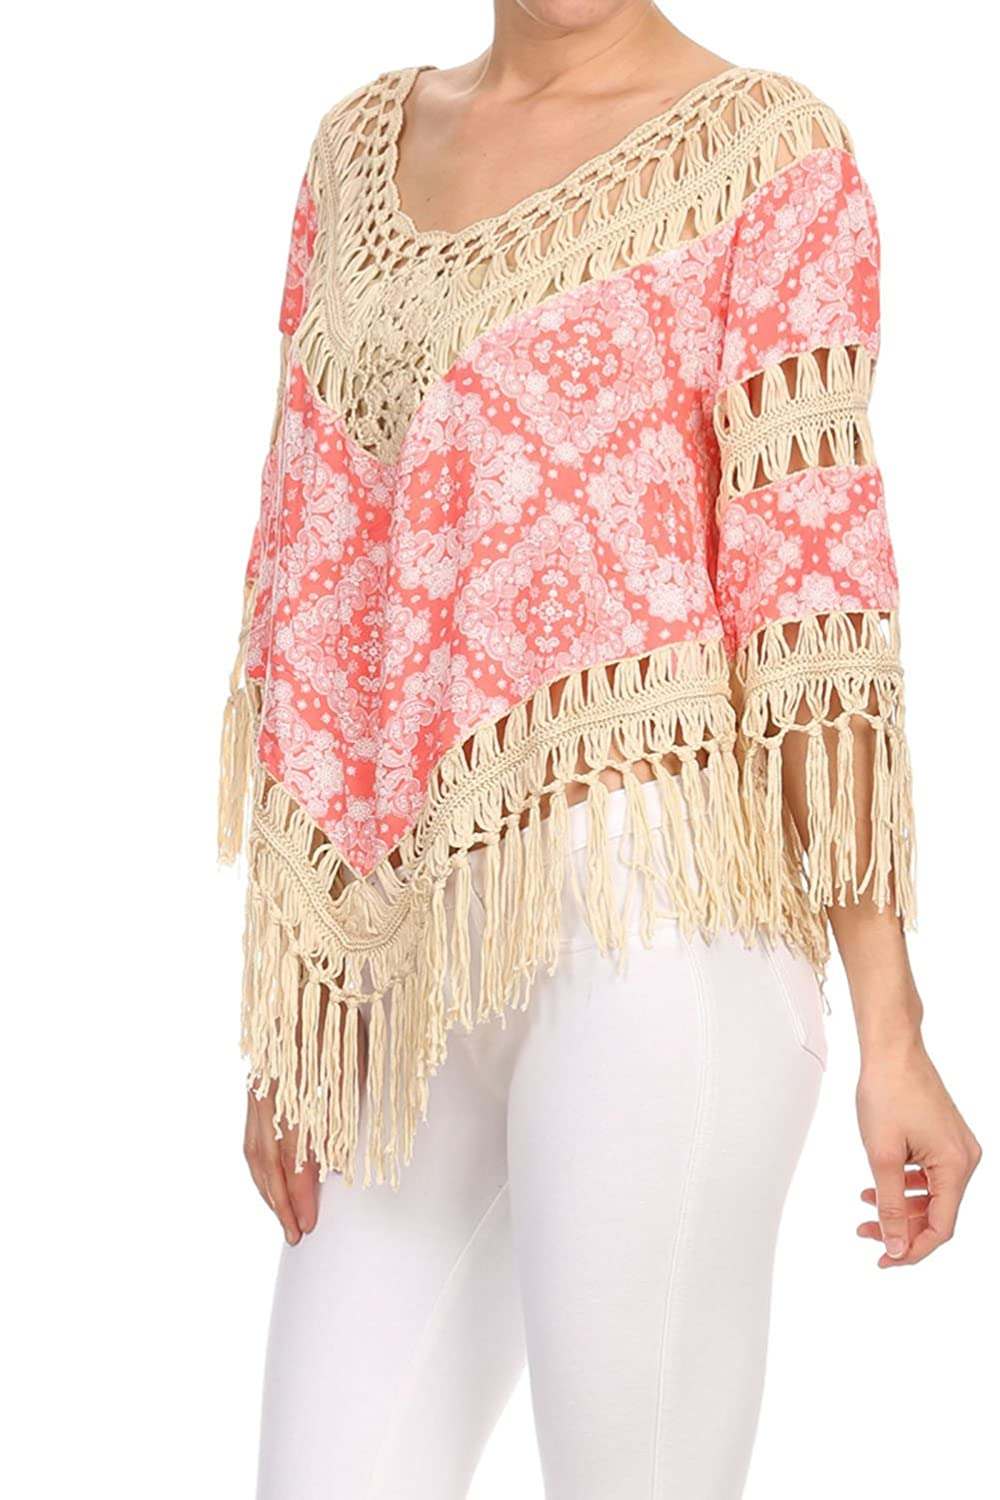 Vialumi Women's Juniors 3/4 Sleeve Fringed Crochet Poncho Shirt Pink